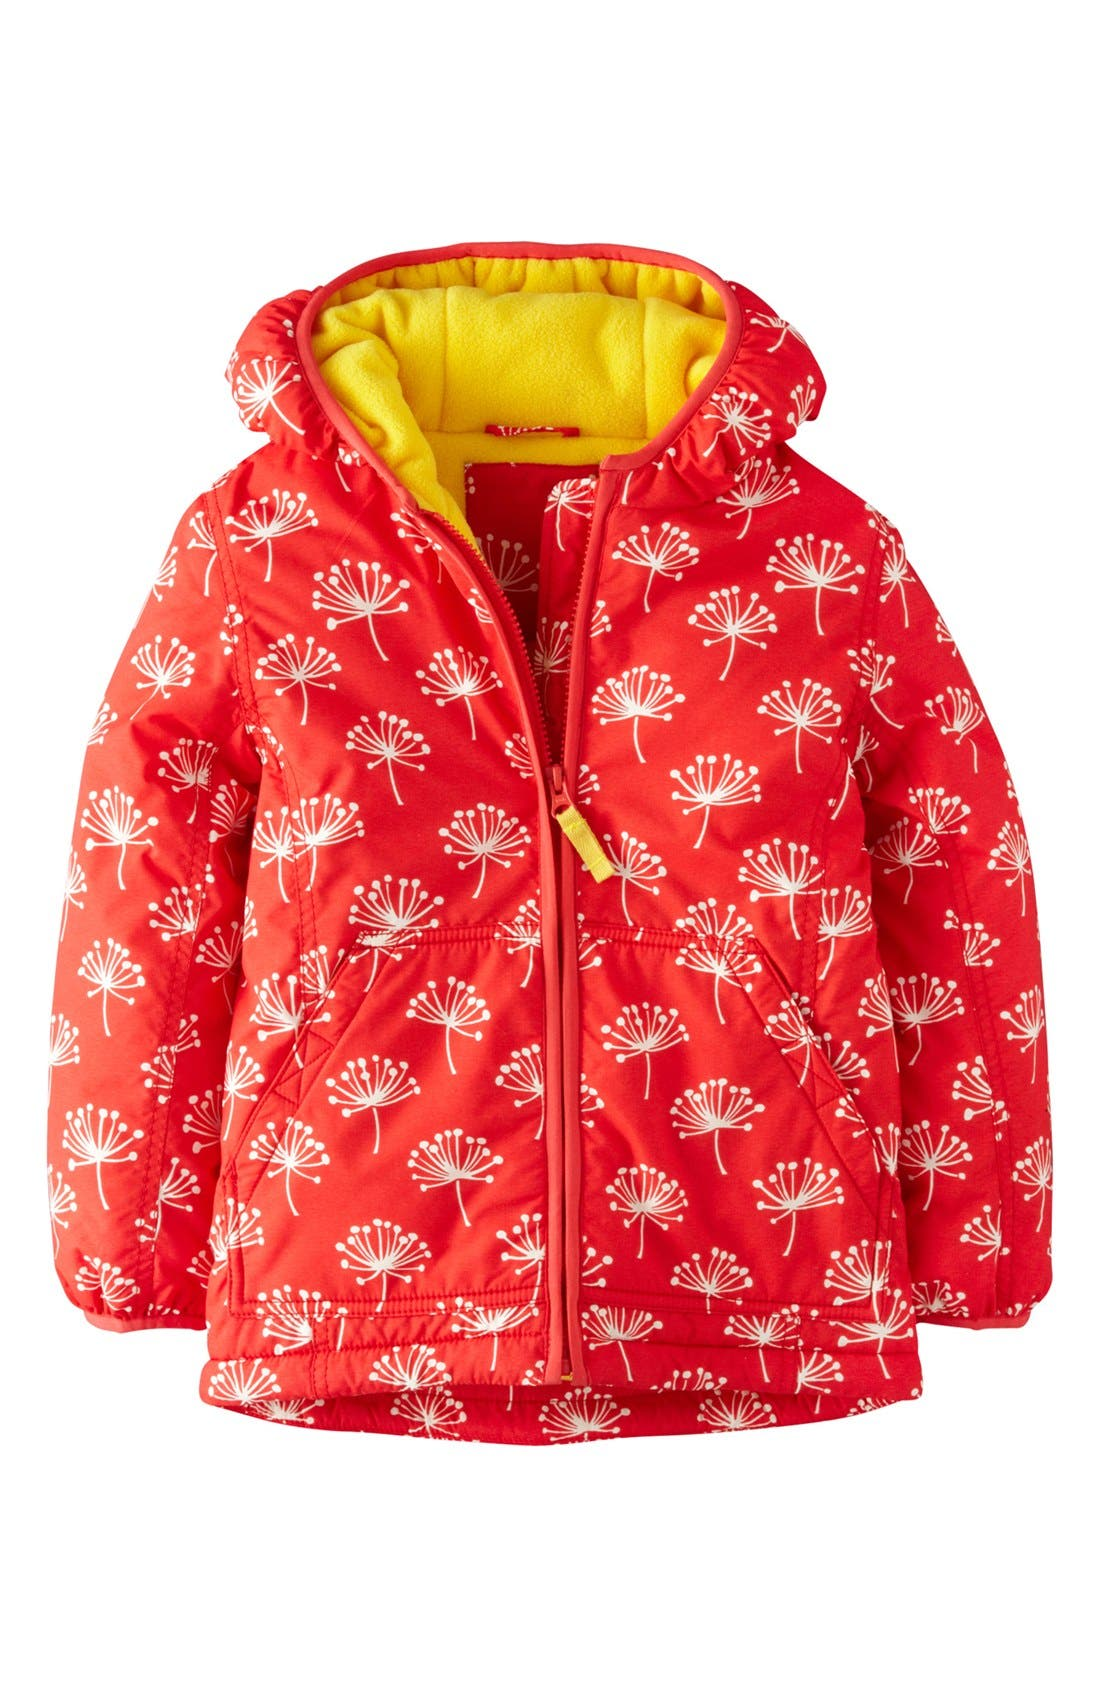 Alternate Image 1 Selected - Mini Boden Print Water Resistant Hooded Anorak (Little Girls & Big Girls)